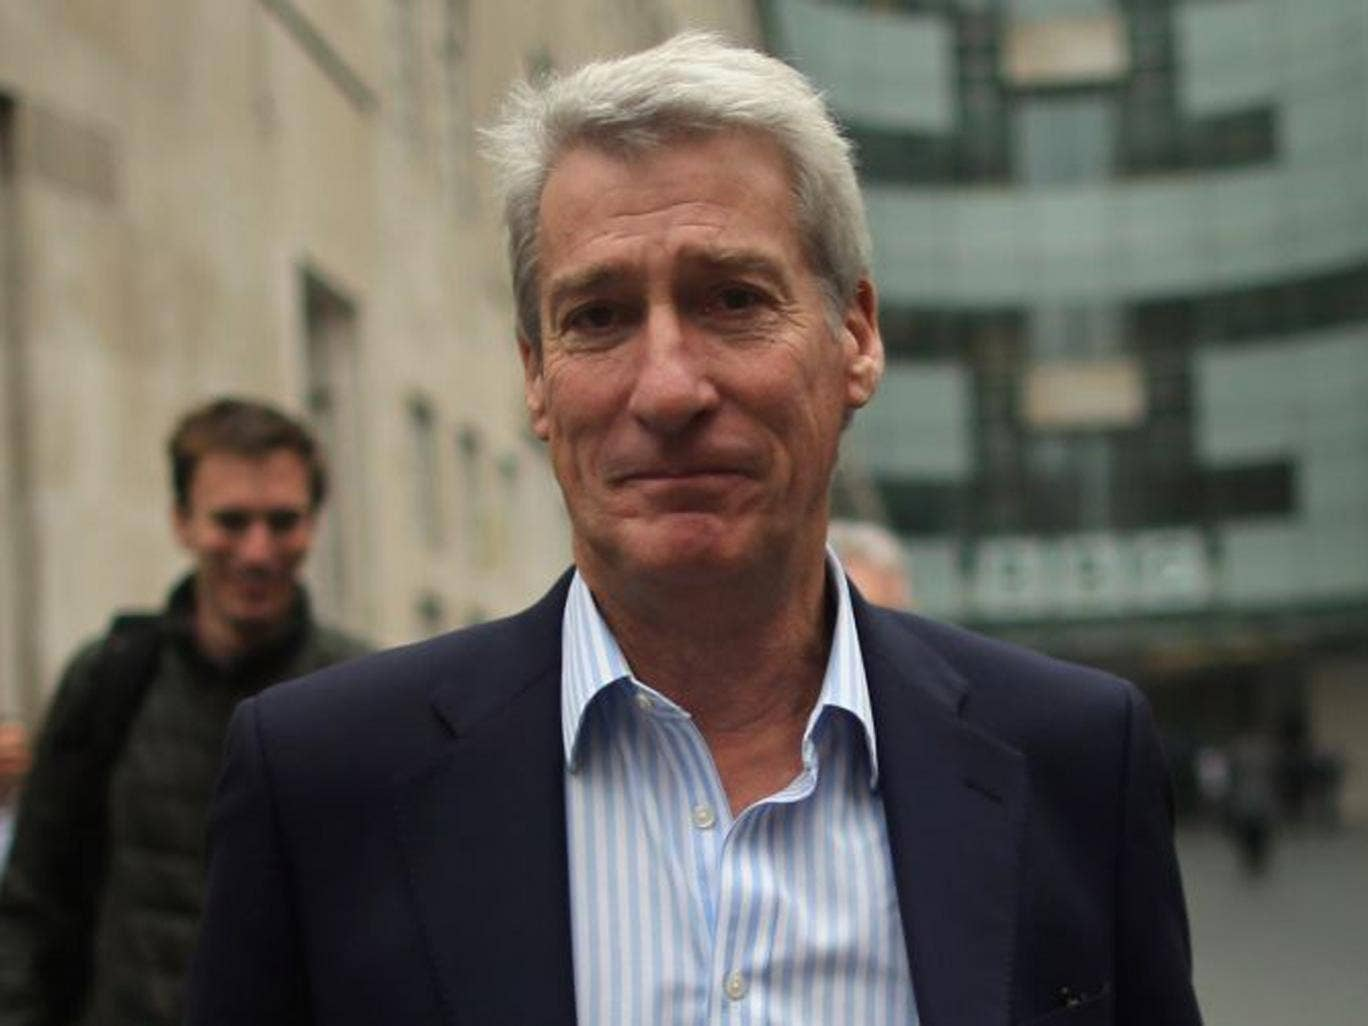 Paxman has angered Scots with his latest remarks